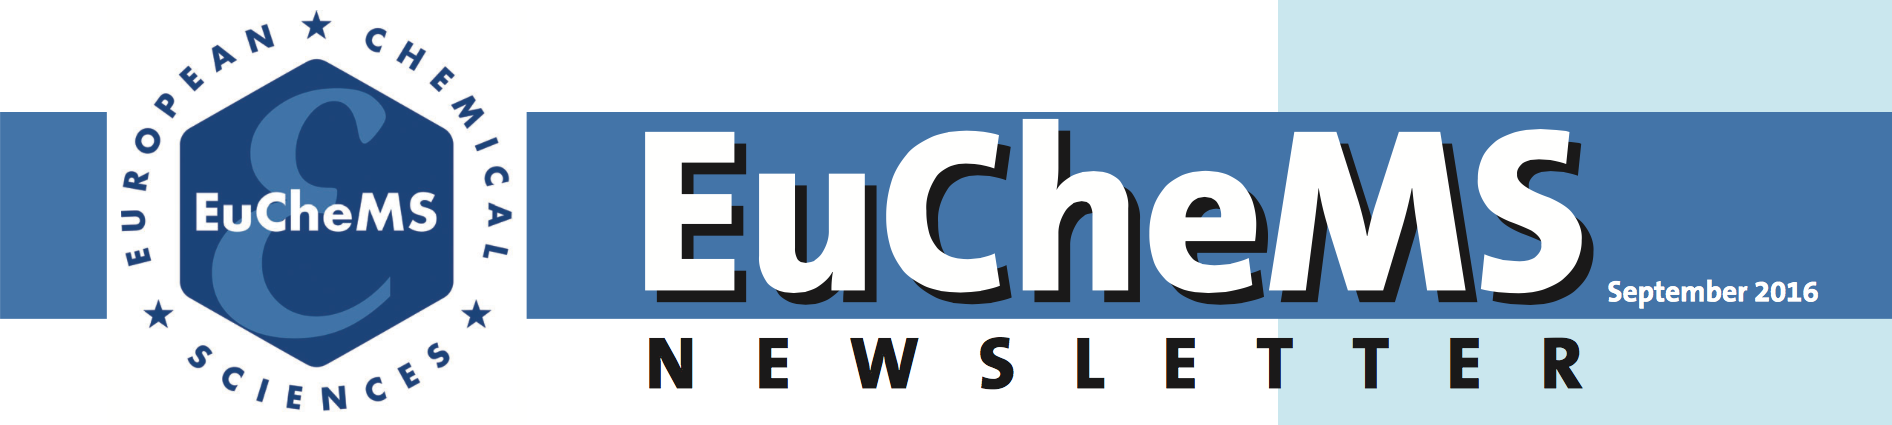 160816 EucheMS-Newsletter